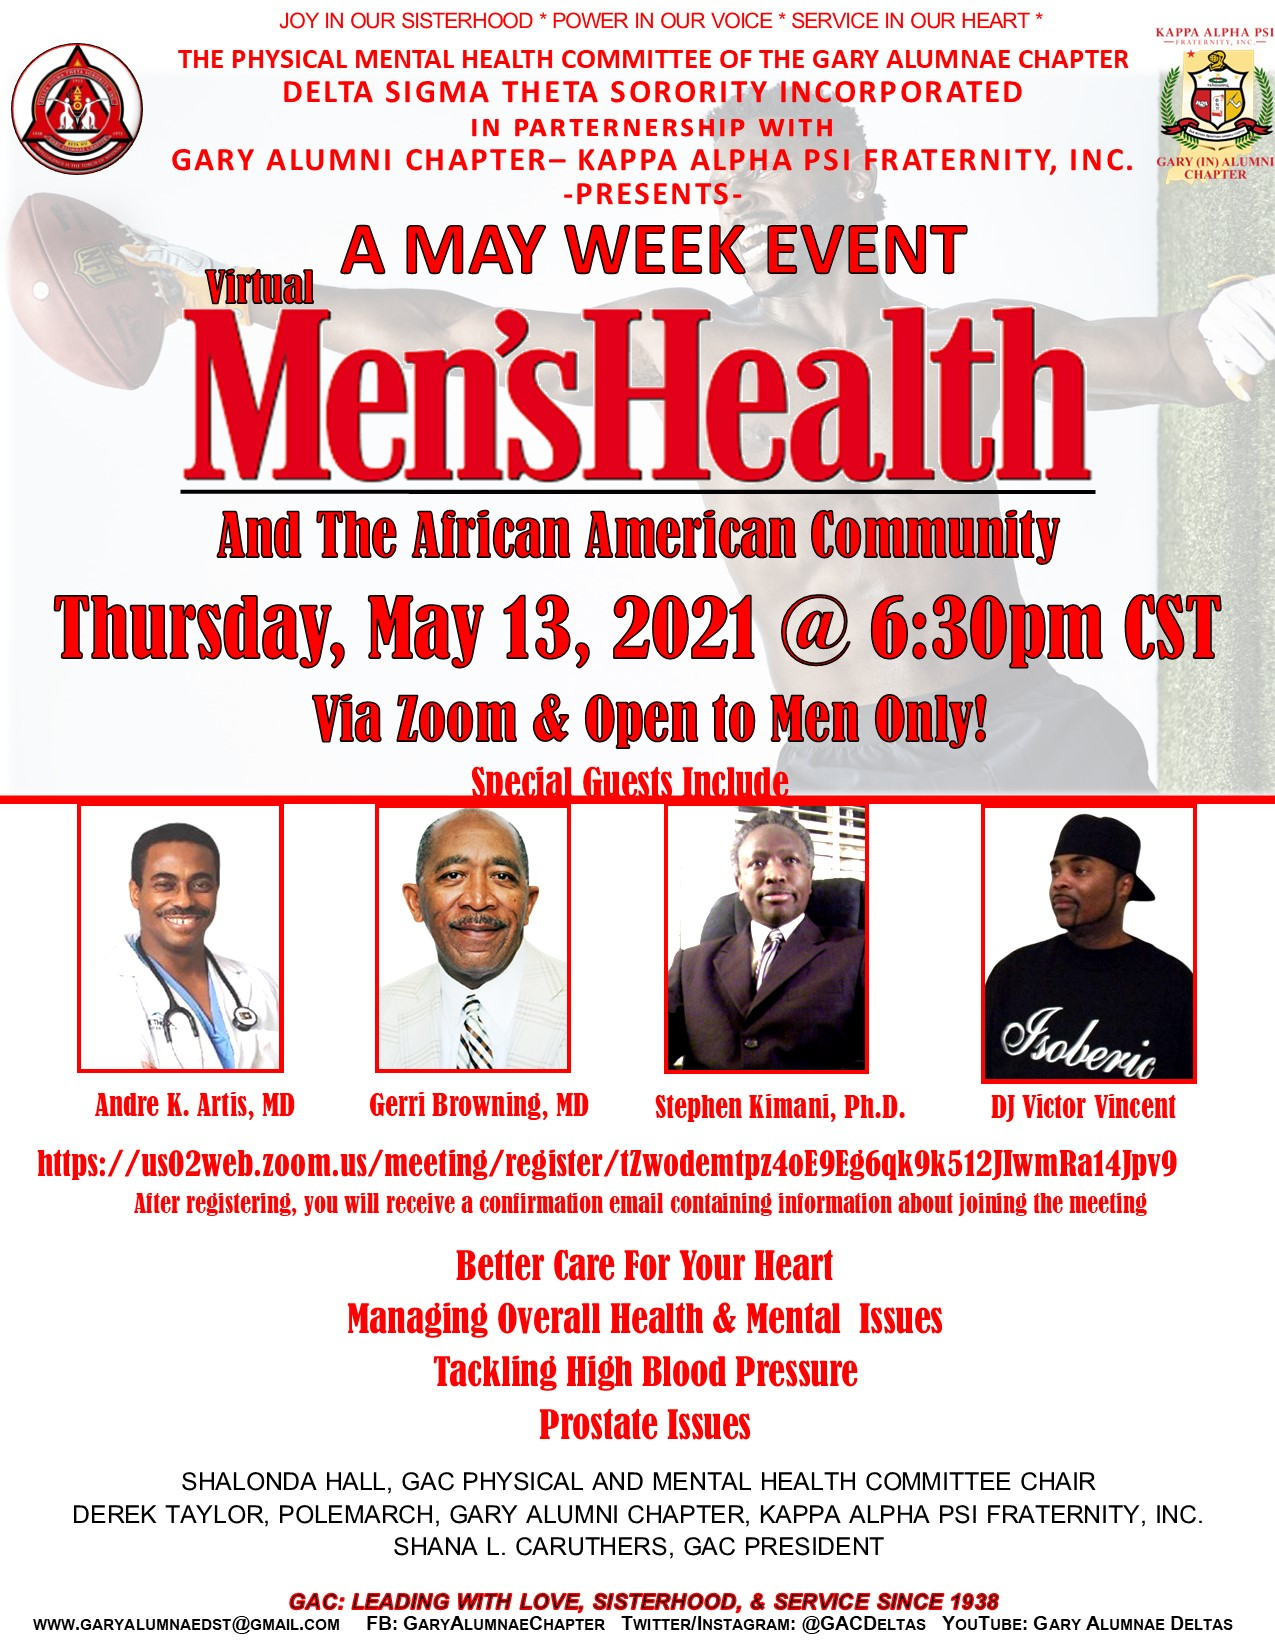 MAY WEEK- MEN'S HEALTH & THE AFRICAN AMERICAN COMMUNITY (THURS) CLICK ON THE FLYER